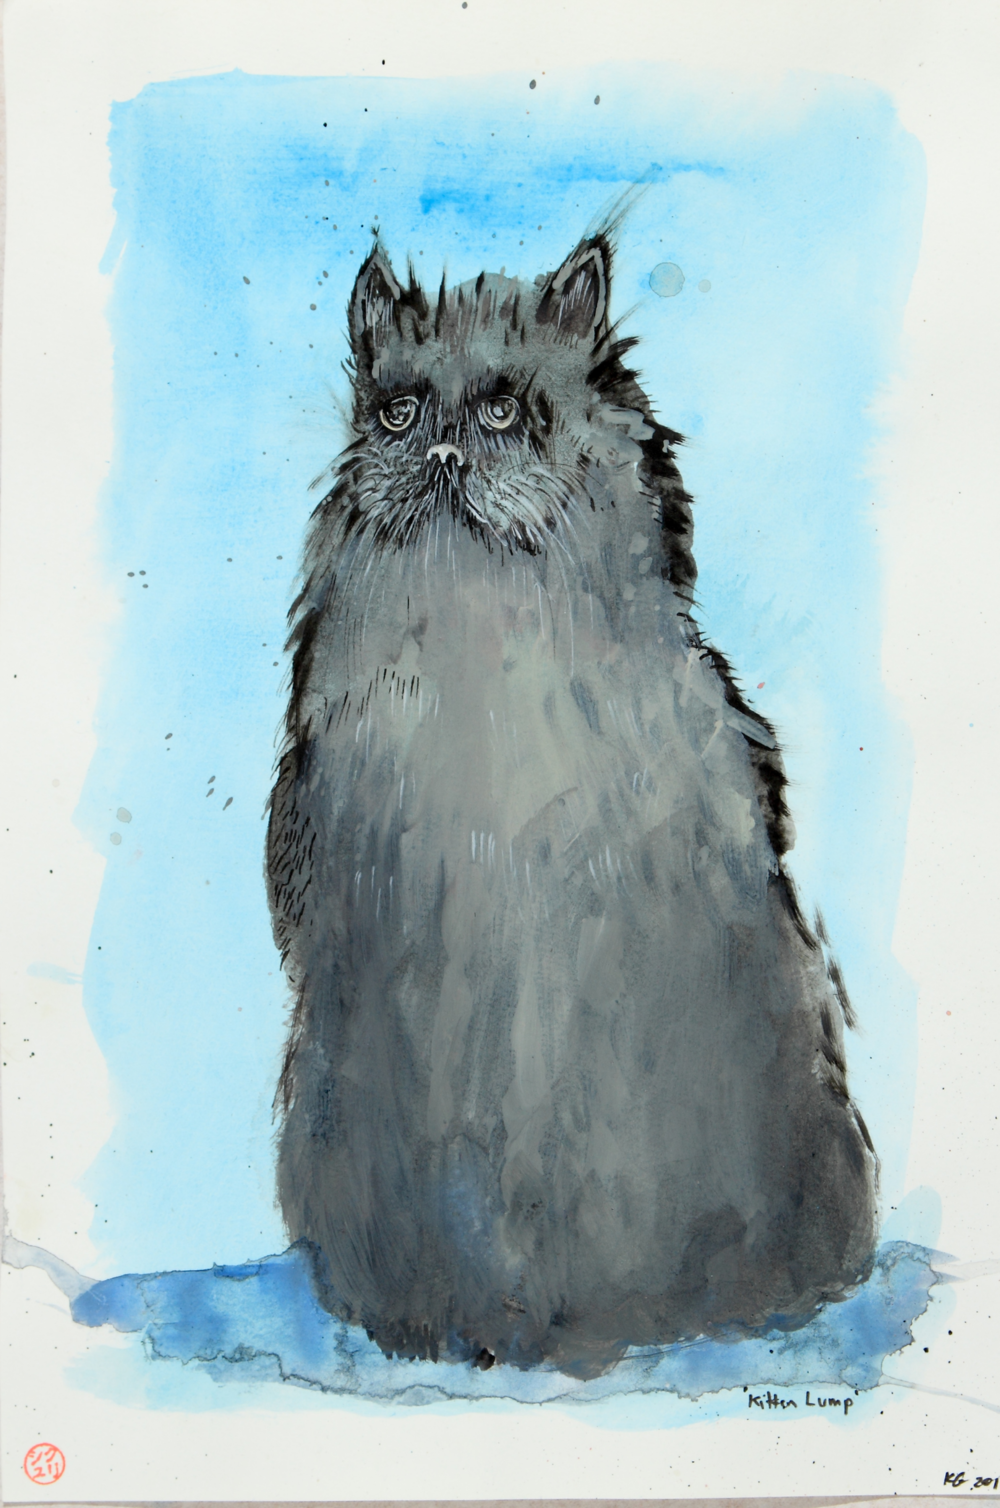 Kitten Lump, 2014 [private collection NY, NY] Watercolor on paper 9 1/2 x 13 1/2 in.